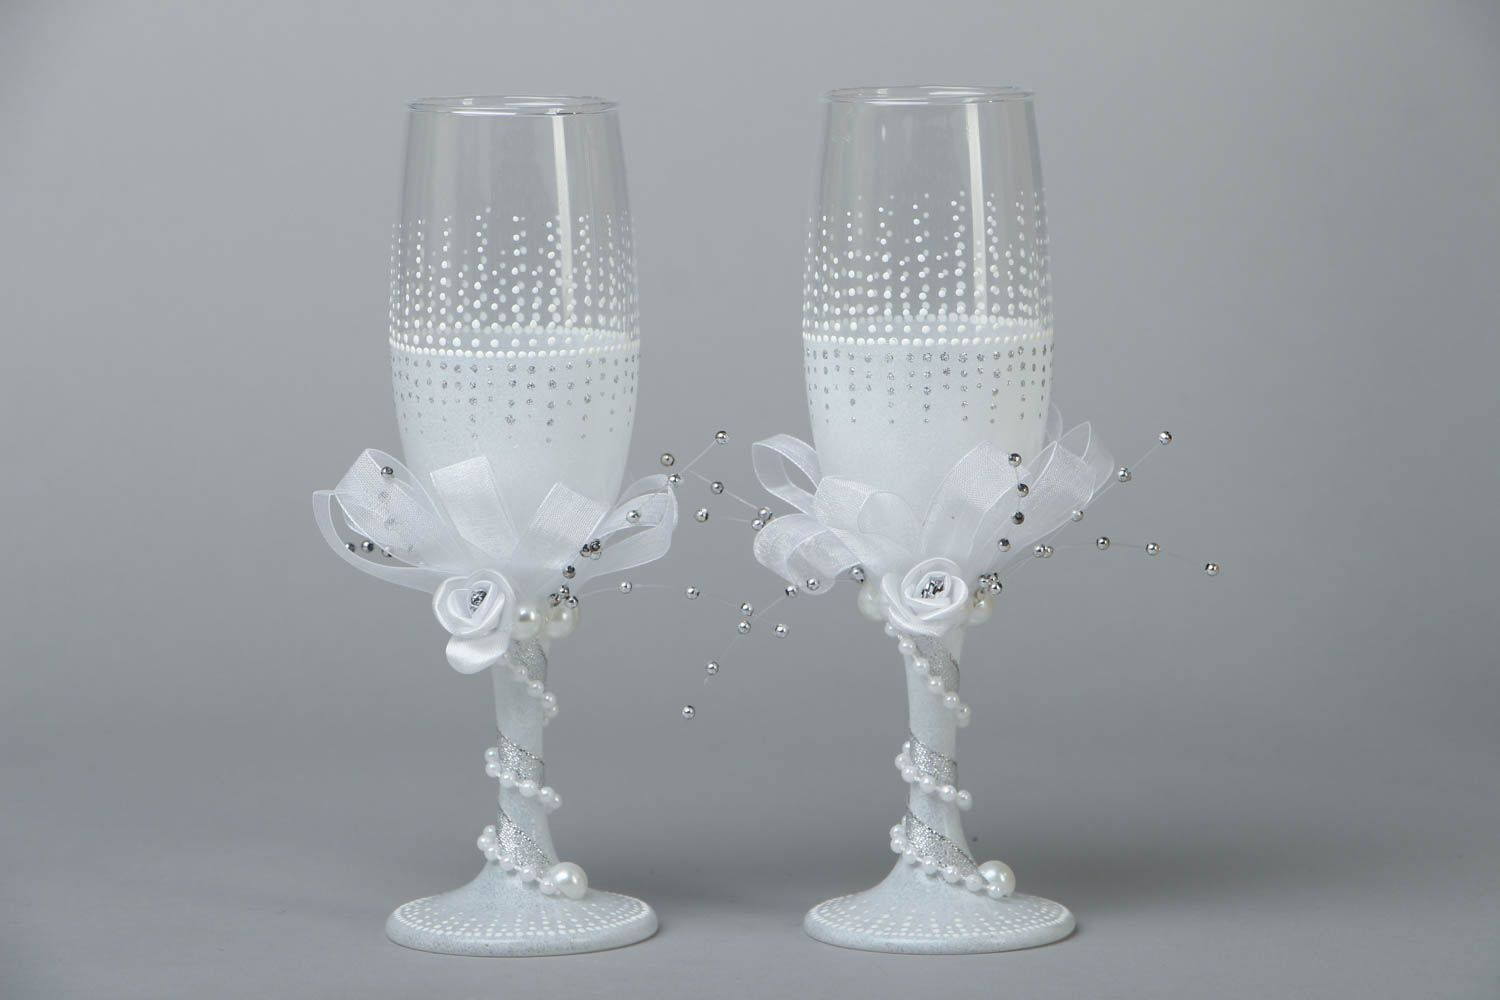 Wedding glasses for groom and bride photo 1